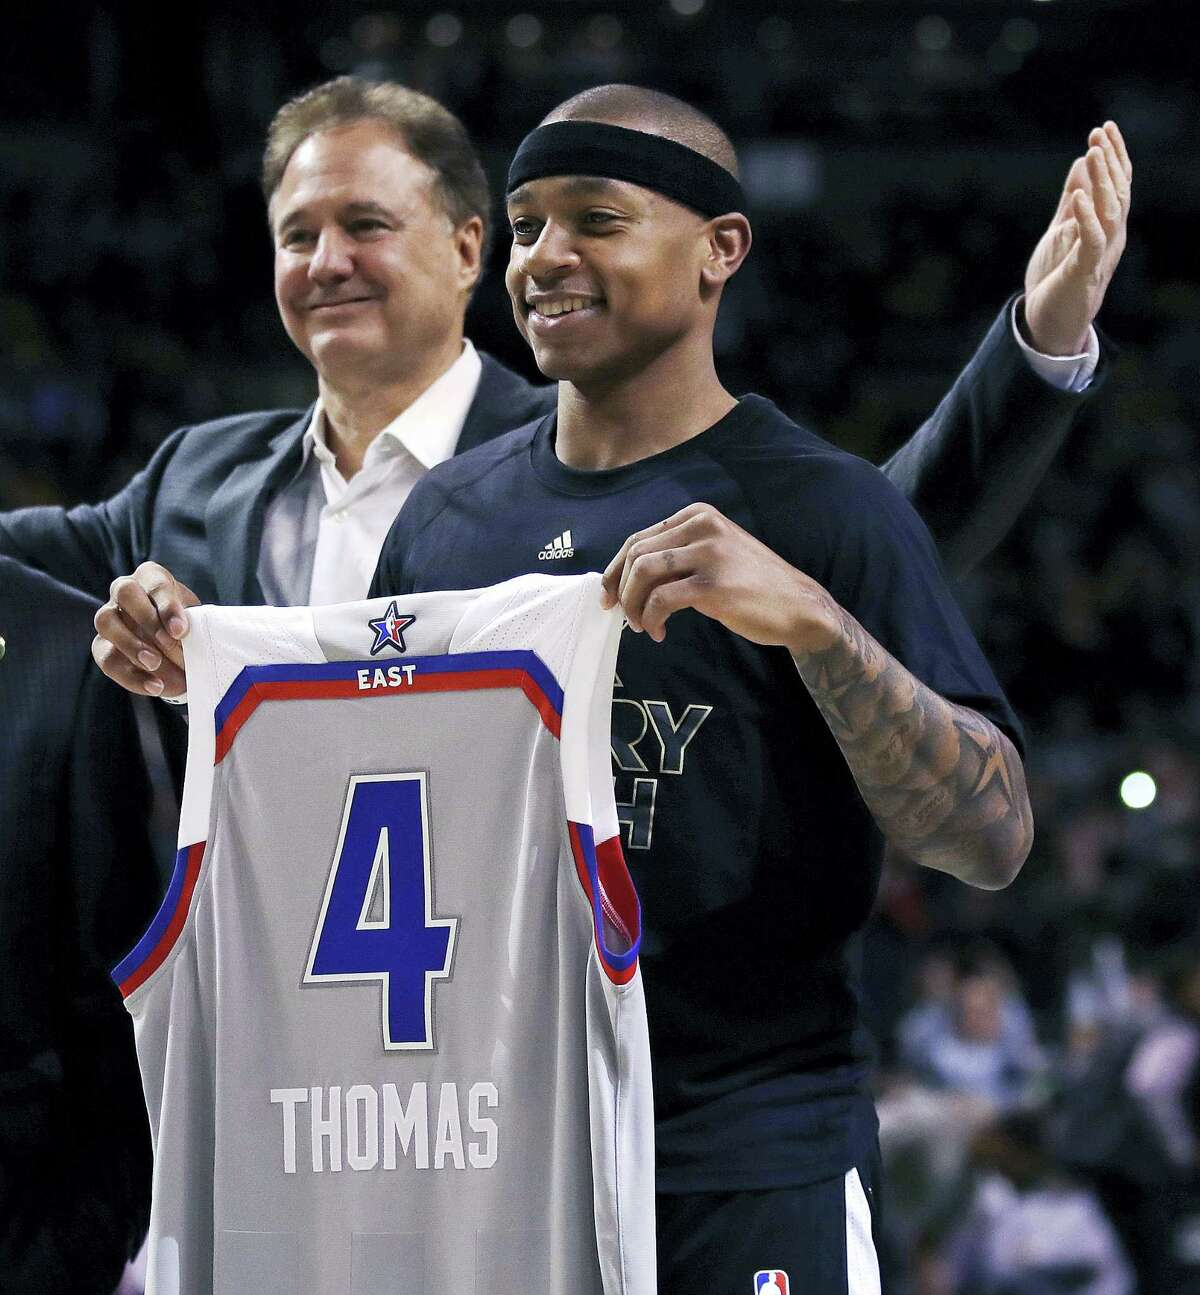 Boston Celtics guard Isaiah Thomas (4) holds up his NBA All Star jersey prior to the first quarter Wednesday. At rear is Celtics co-owner Steve Pagliuca.